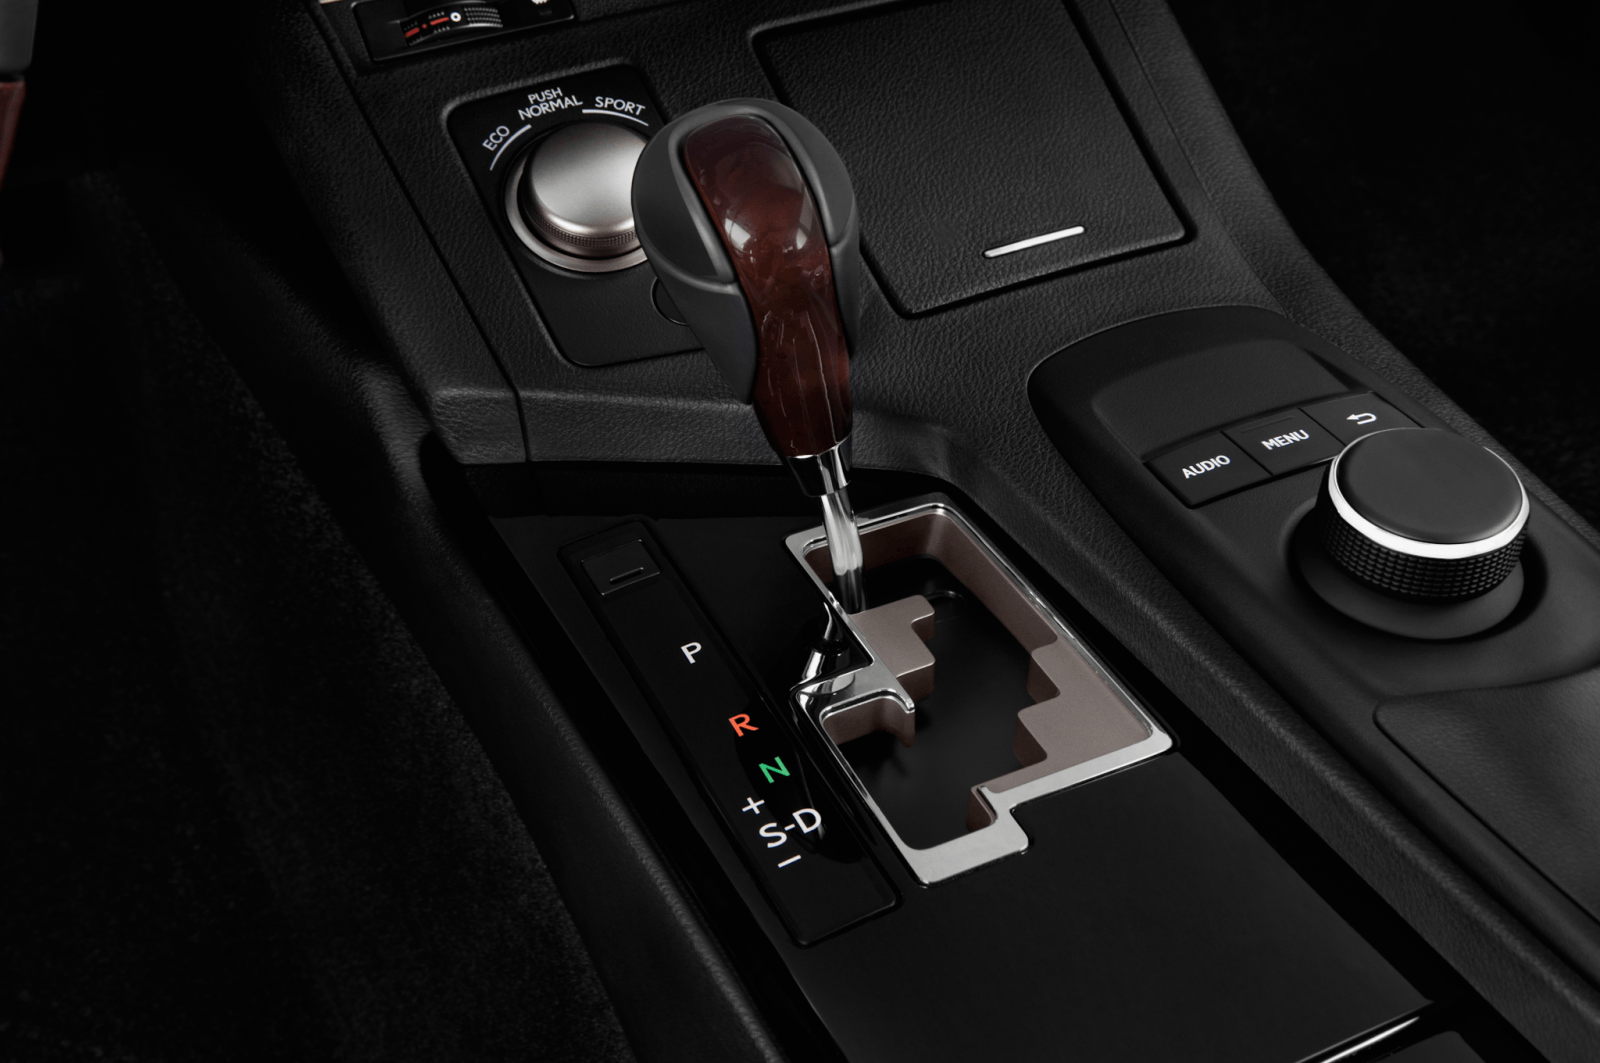 How to Fix When Automatic Transmission Won't Shift into 3rd Gear